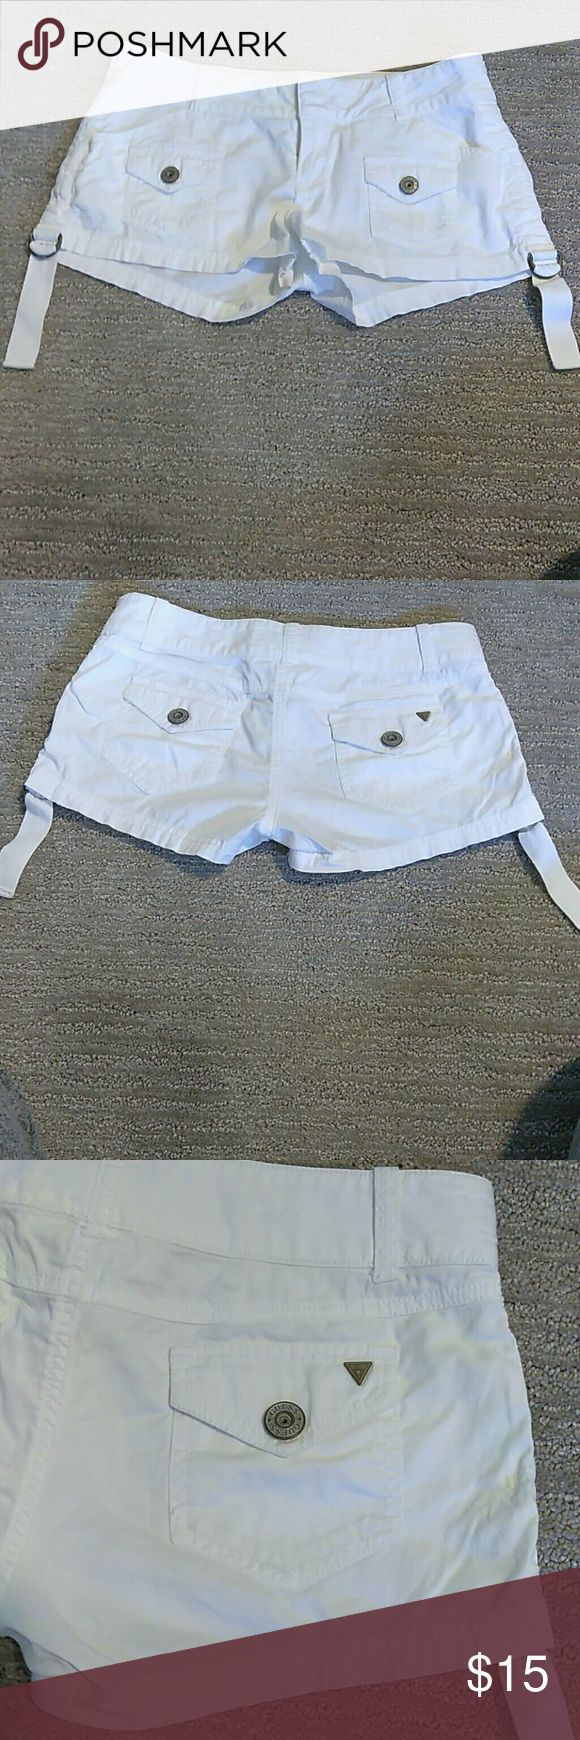 Guess White Stretch  Shorts Guess White Stretch Shorts, size 26, no stains! Excellent condition! Guess Shorts